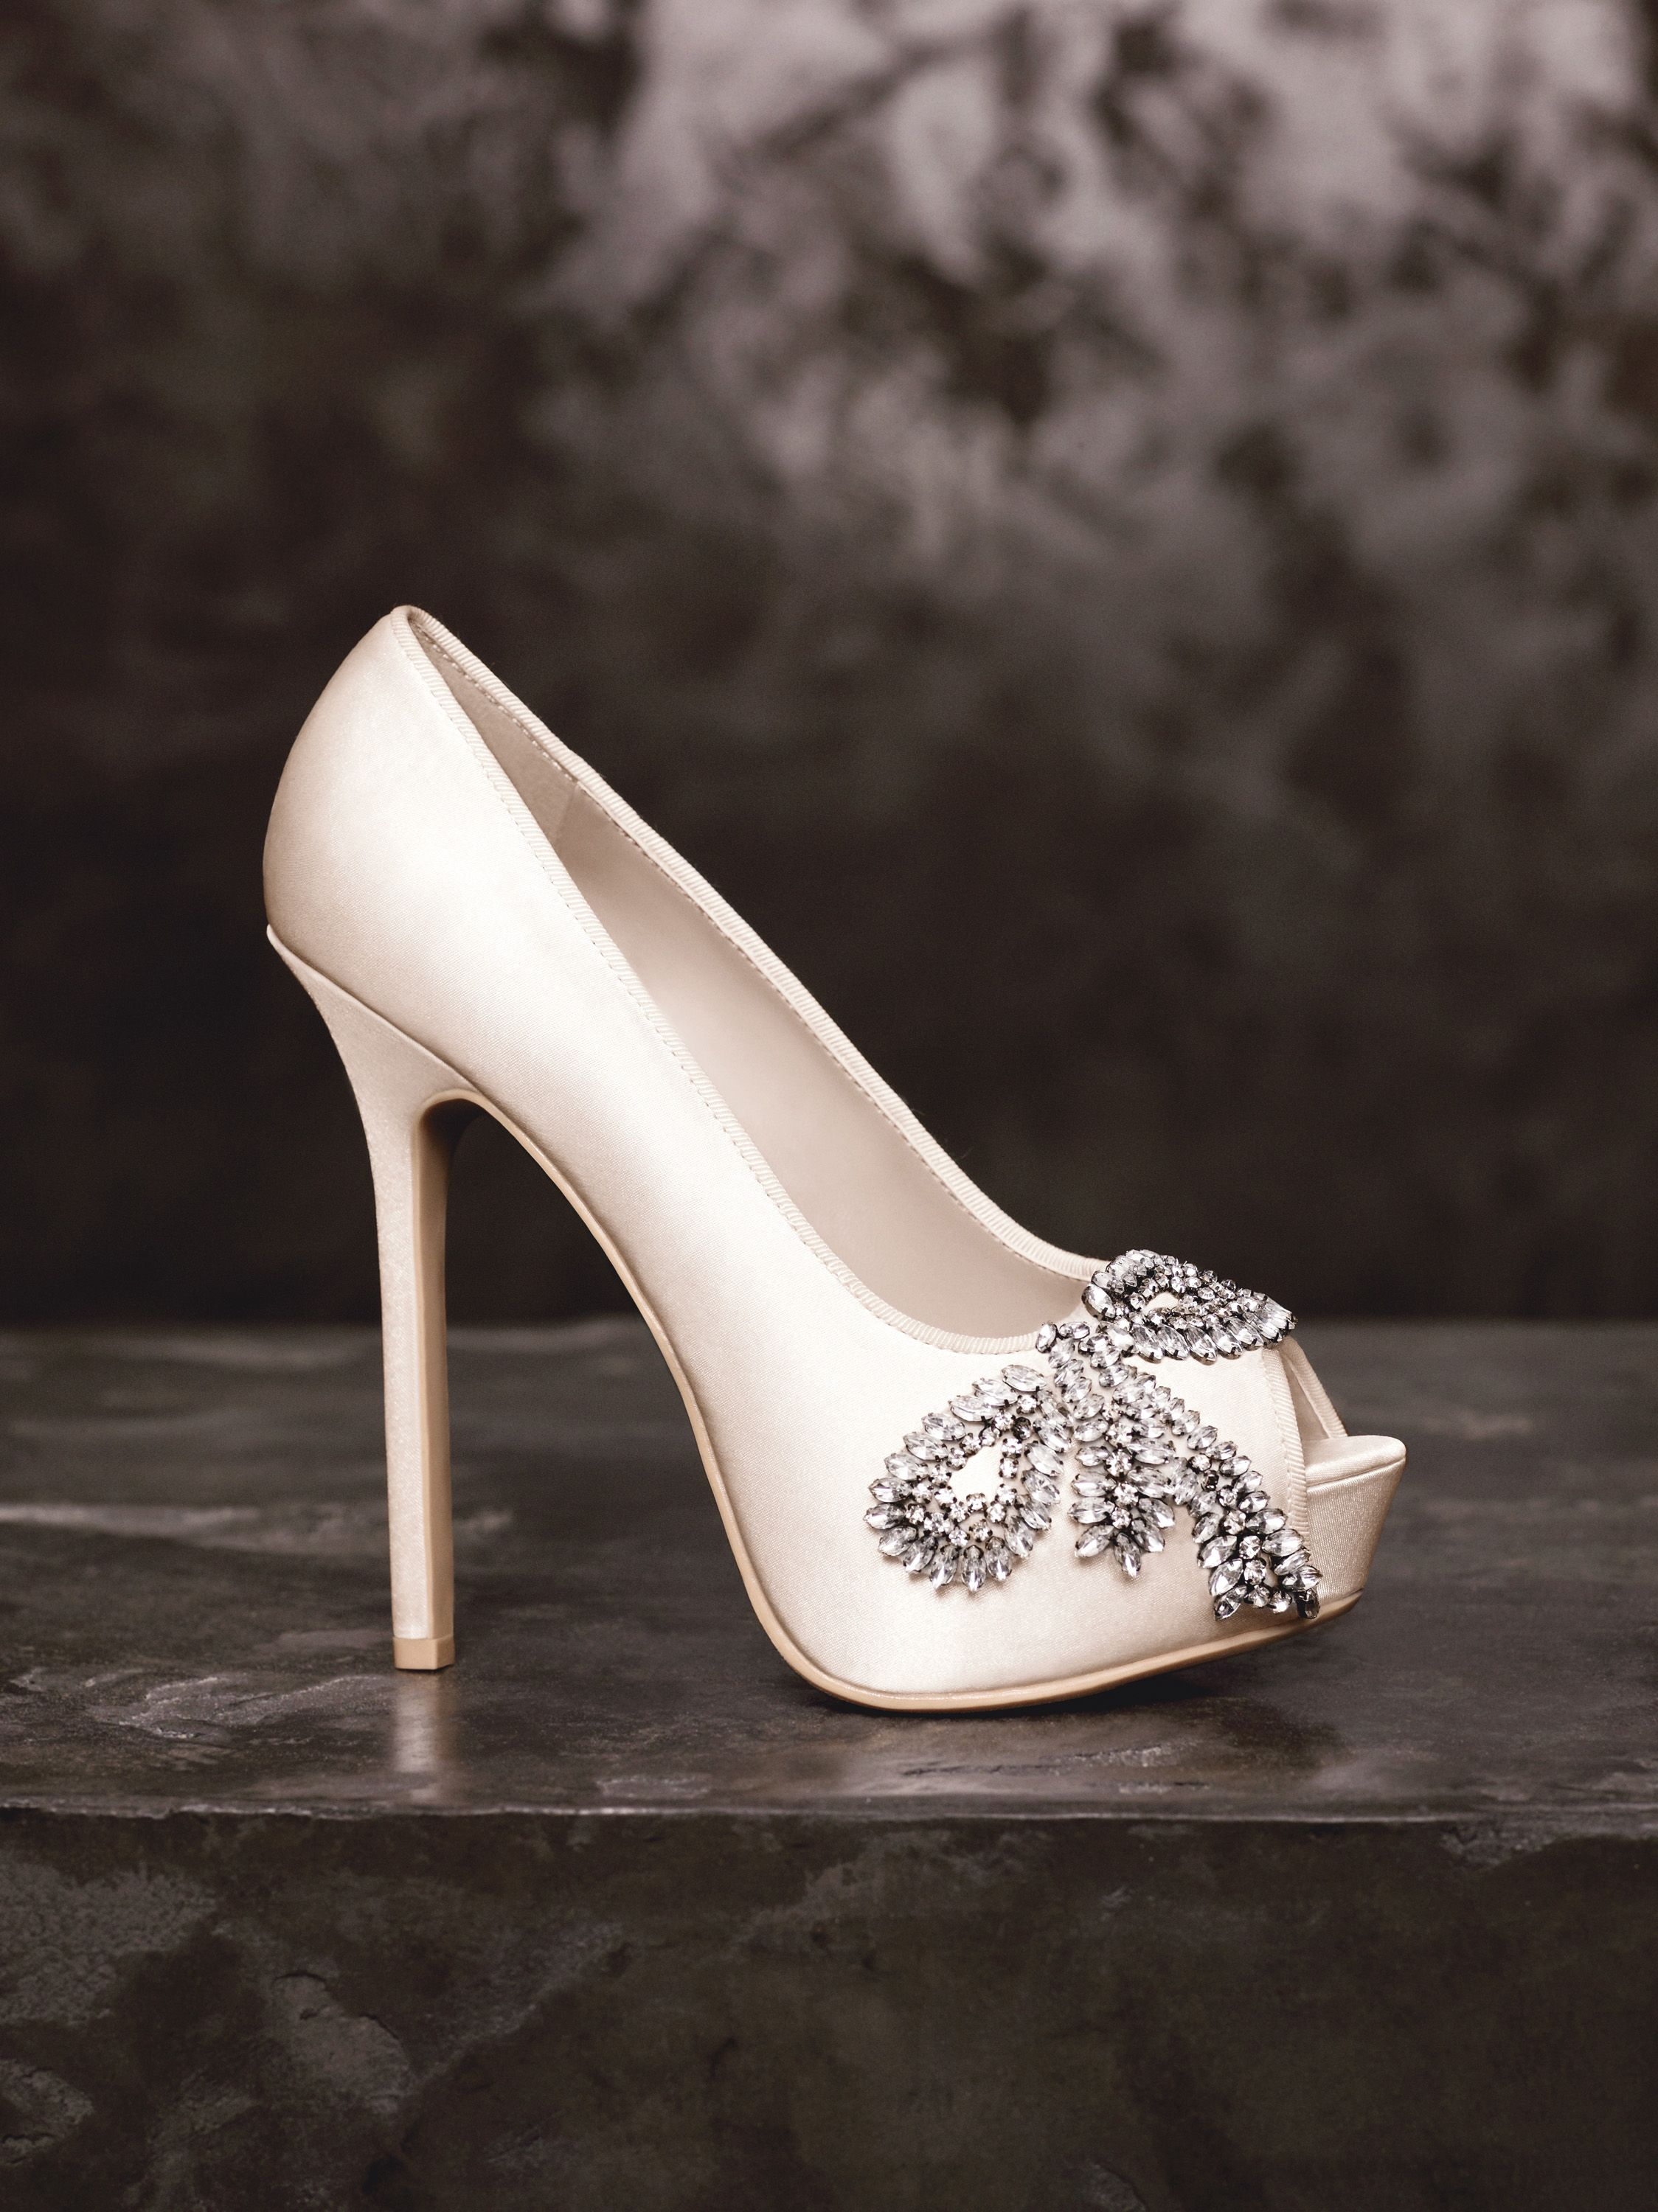 Scarpe Sposa Vera Wang.White By Vera Wang Wedding Shoes Vw370143 Scarpe Da Sposa